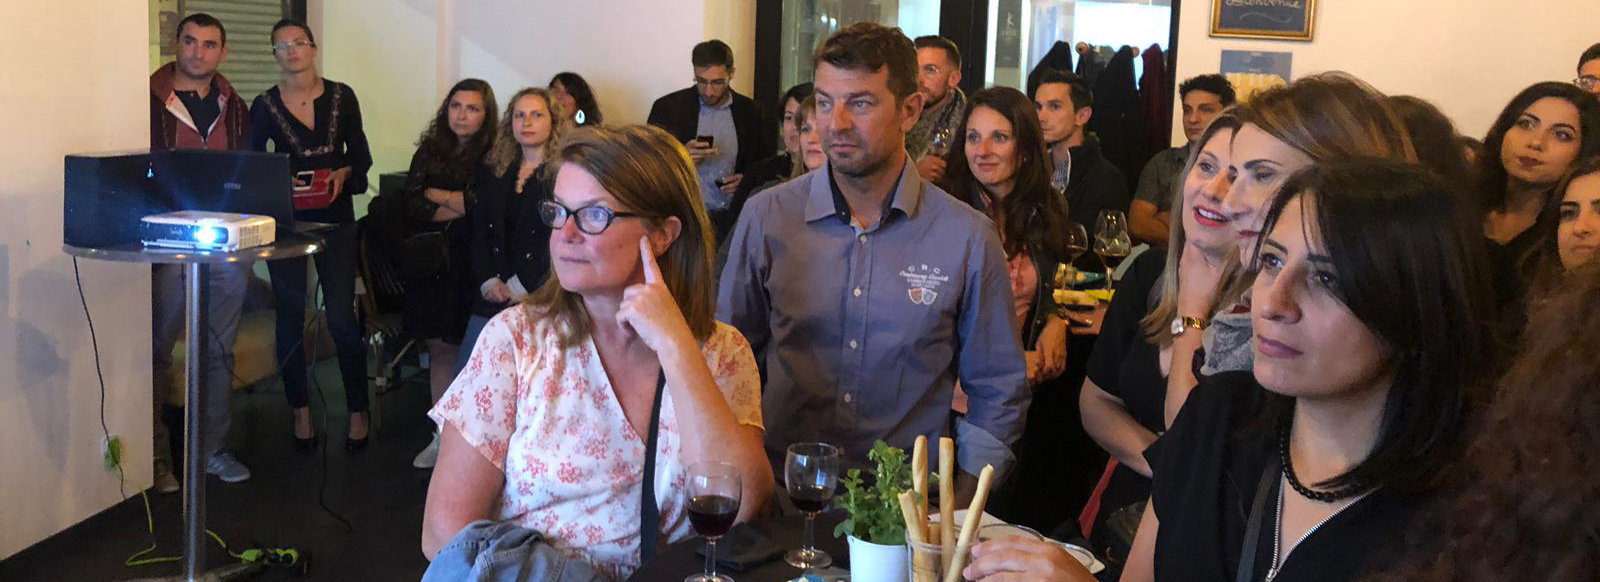 A New Start for AGBU Young Professionals in Valence, France